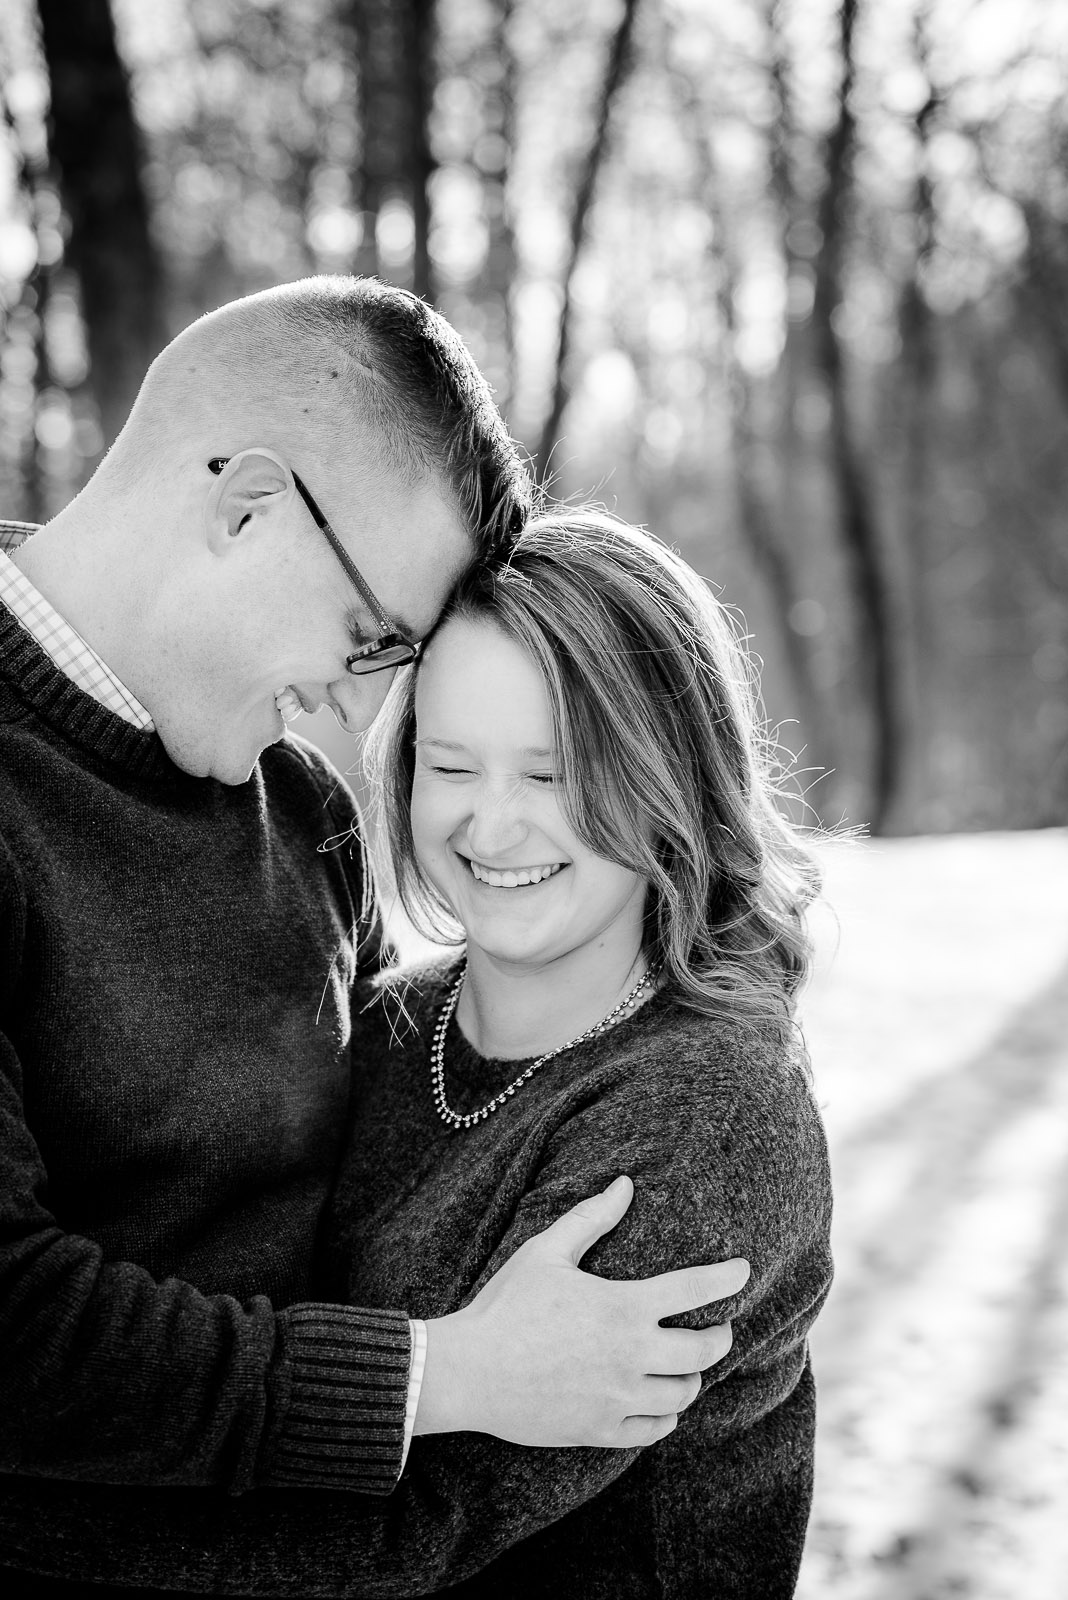 Eric_and_Christy_Photography_Engagement_Erica_Mike-10